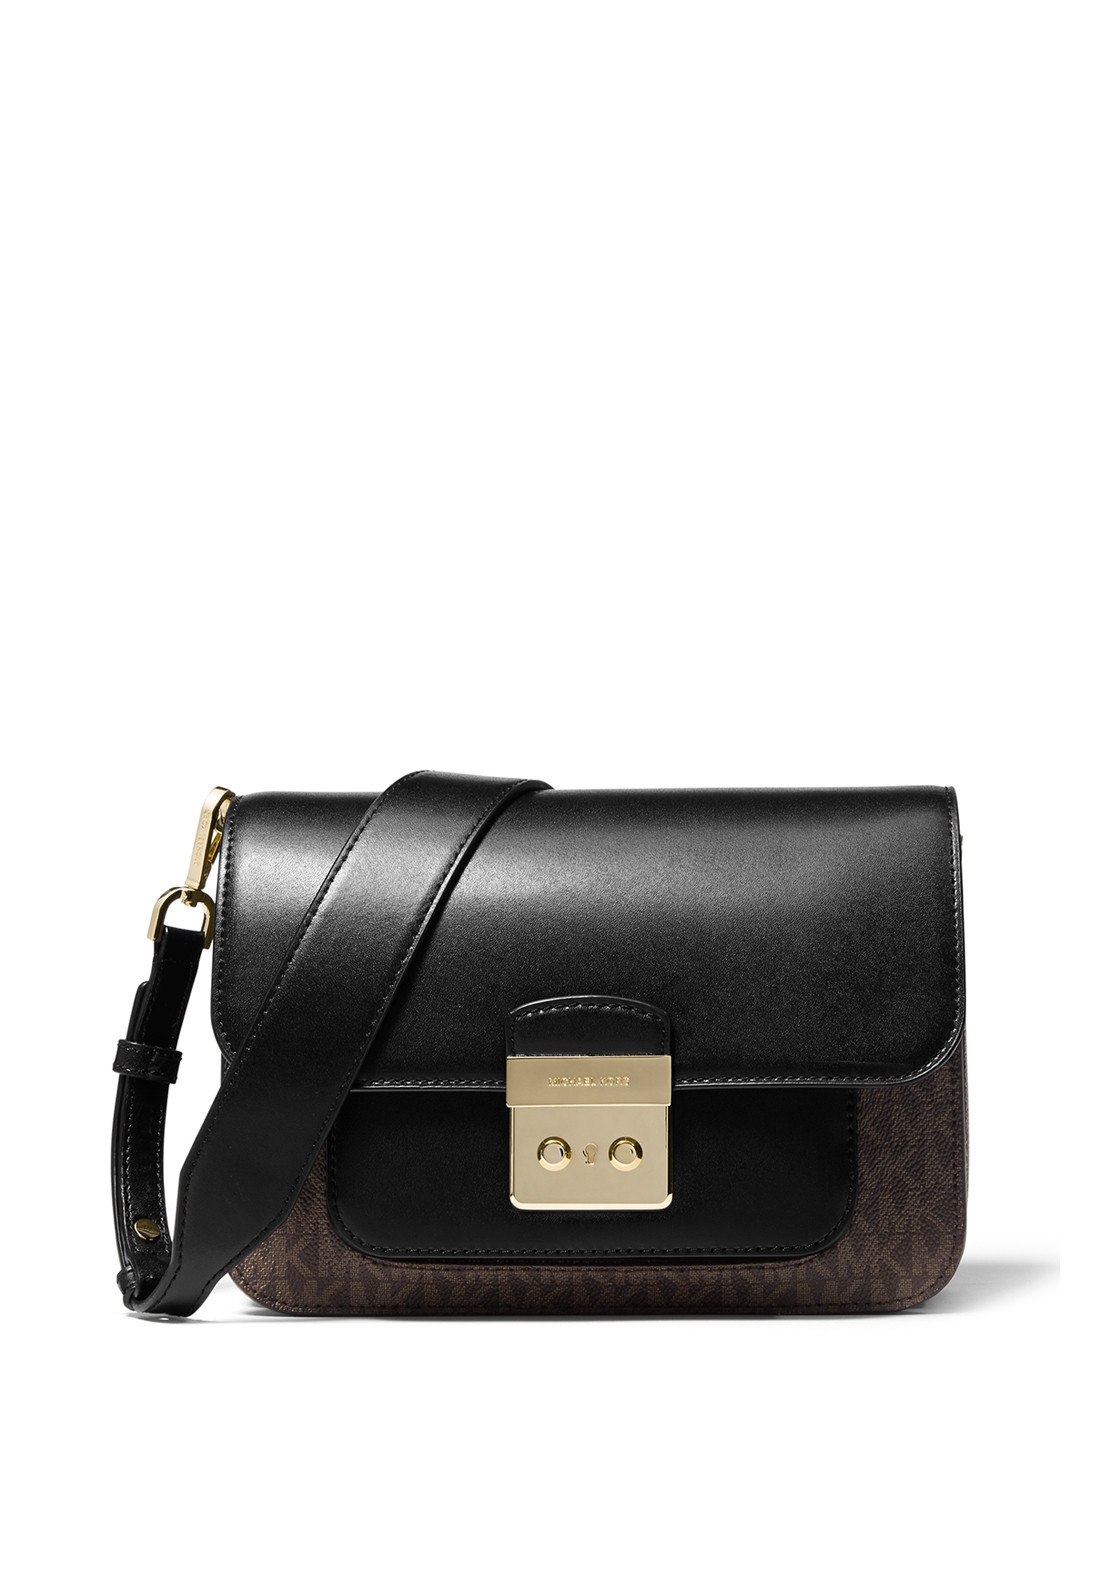 5042ce9532e6 MICHAEL Michael Kors Sloan Editor Logo Shoulder Bag Brown/Black. Be the  first to review this product